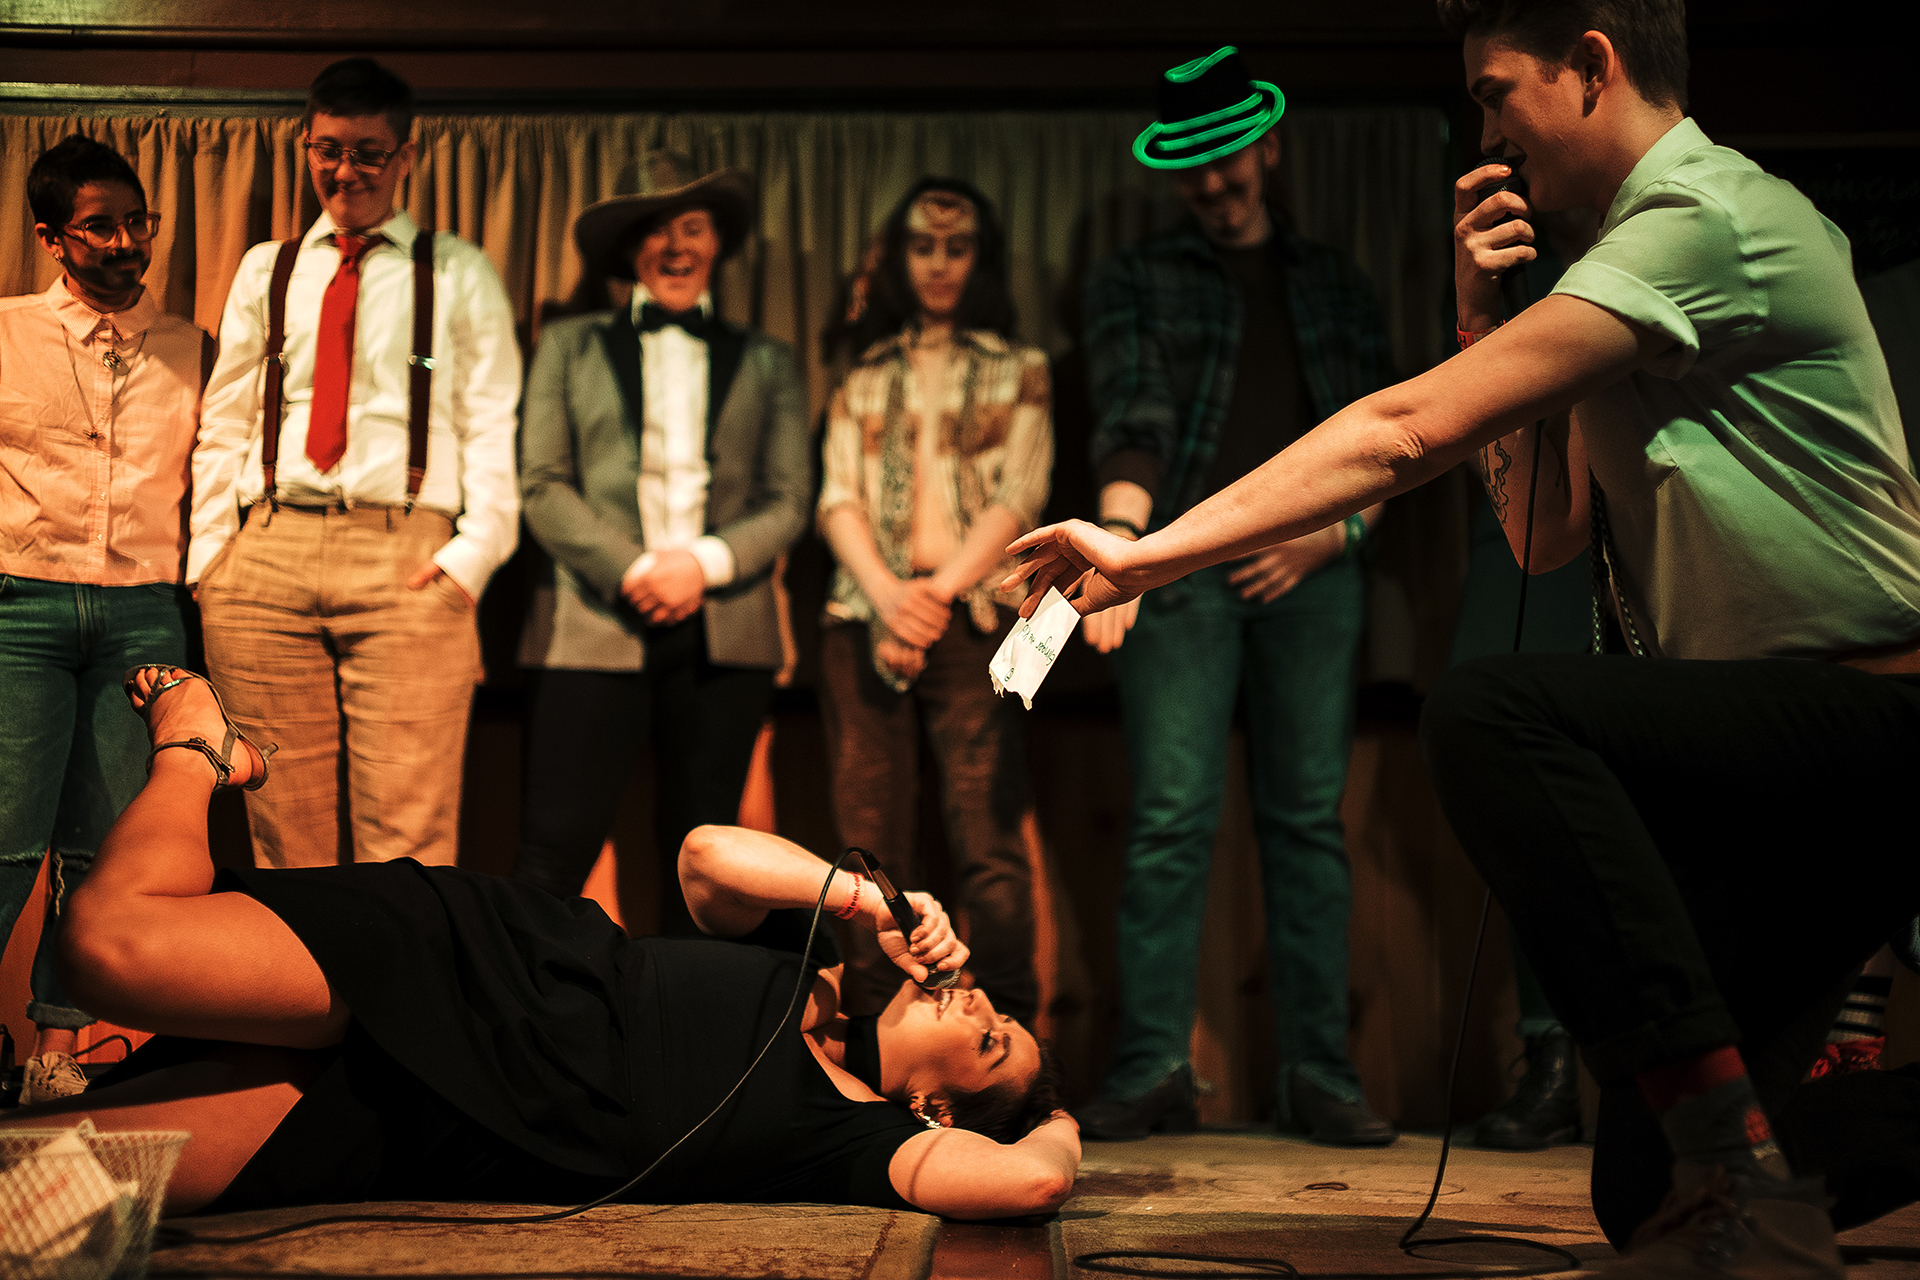 "First Iowa City drag king pageant  - April 19th, 2018""We hope to draw in and serve a wider portion of the community — our LGBTQIA+ — community, as well as our allies,"" Ellis said in an email to The Daily Iowan. ""Trumpet Blossom allowing us to use its space for this event, along with the show time of 7 p.m., allows for a broader audience, including the greatest underserved community: LGBTQIA+ youth."" - Cassie EllisREAD MORE"